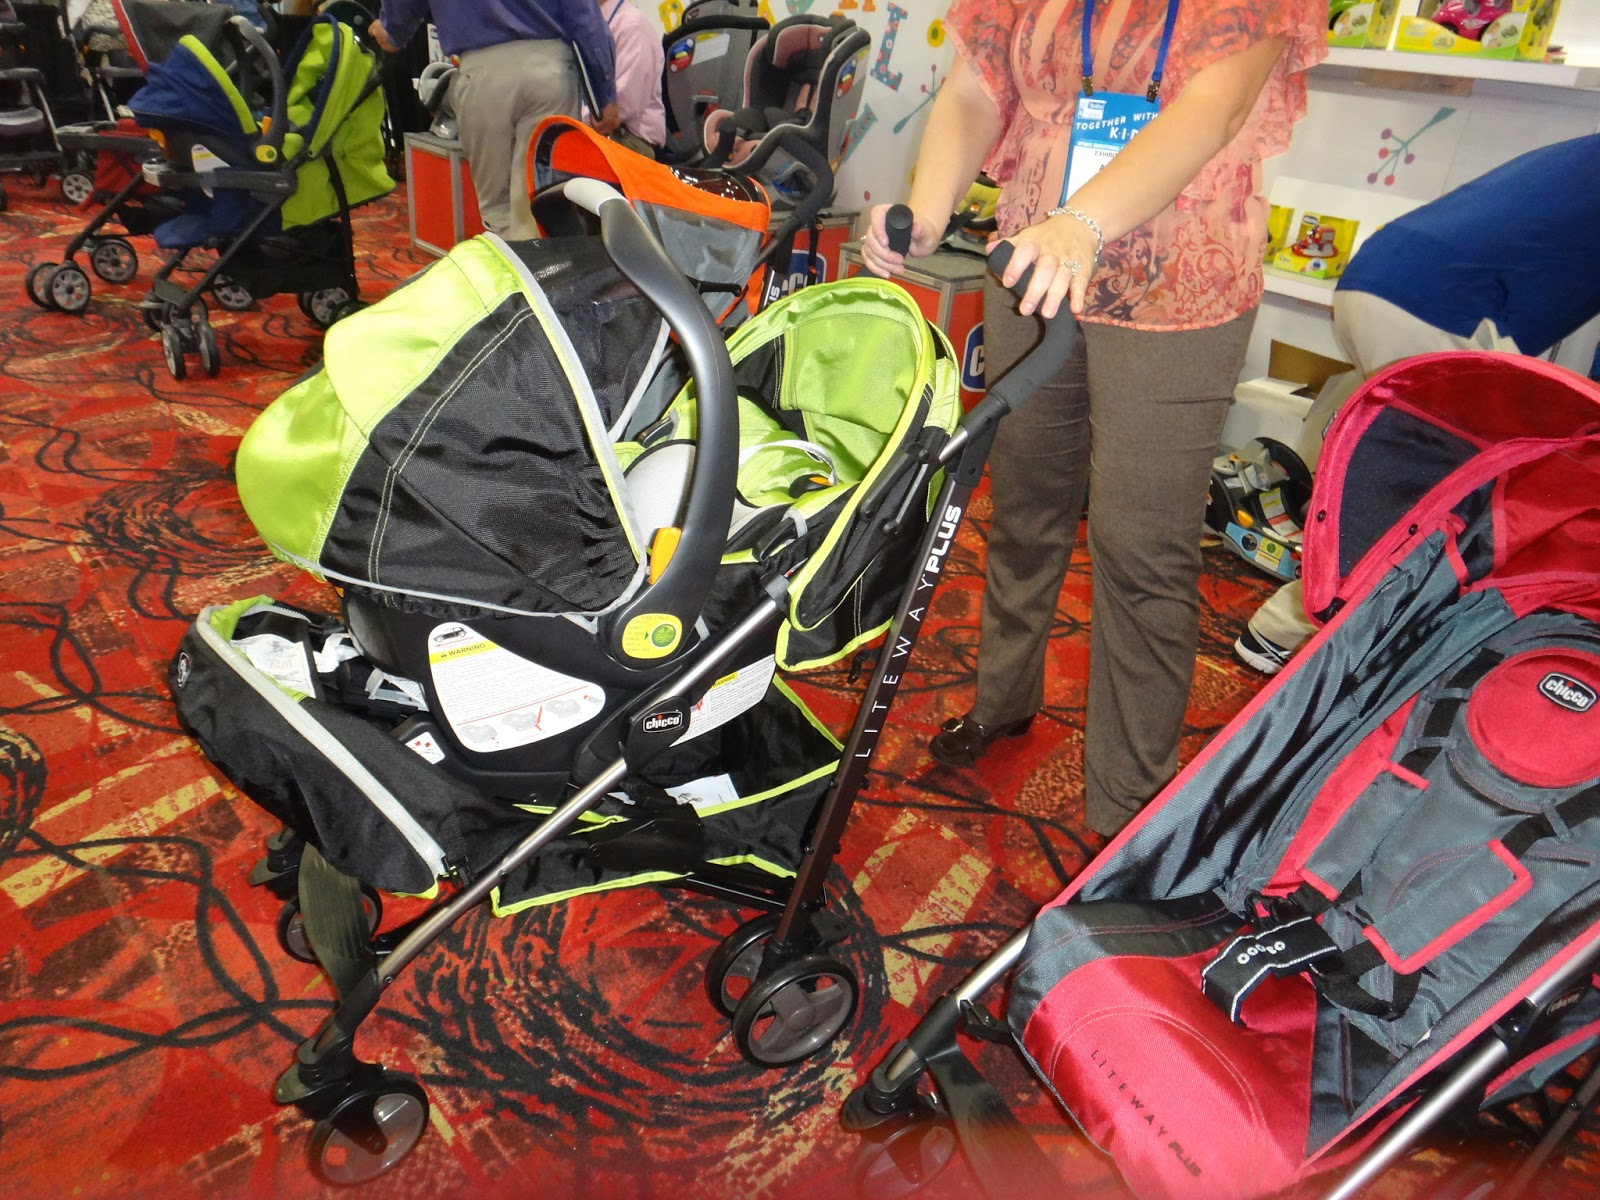 You will still need a stroller with a seat however Research is showing that it is best not to leave infants in car seats for extended periods